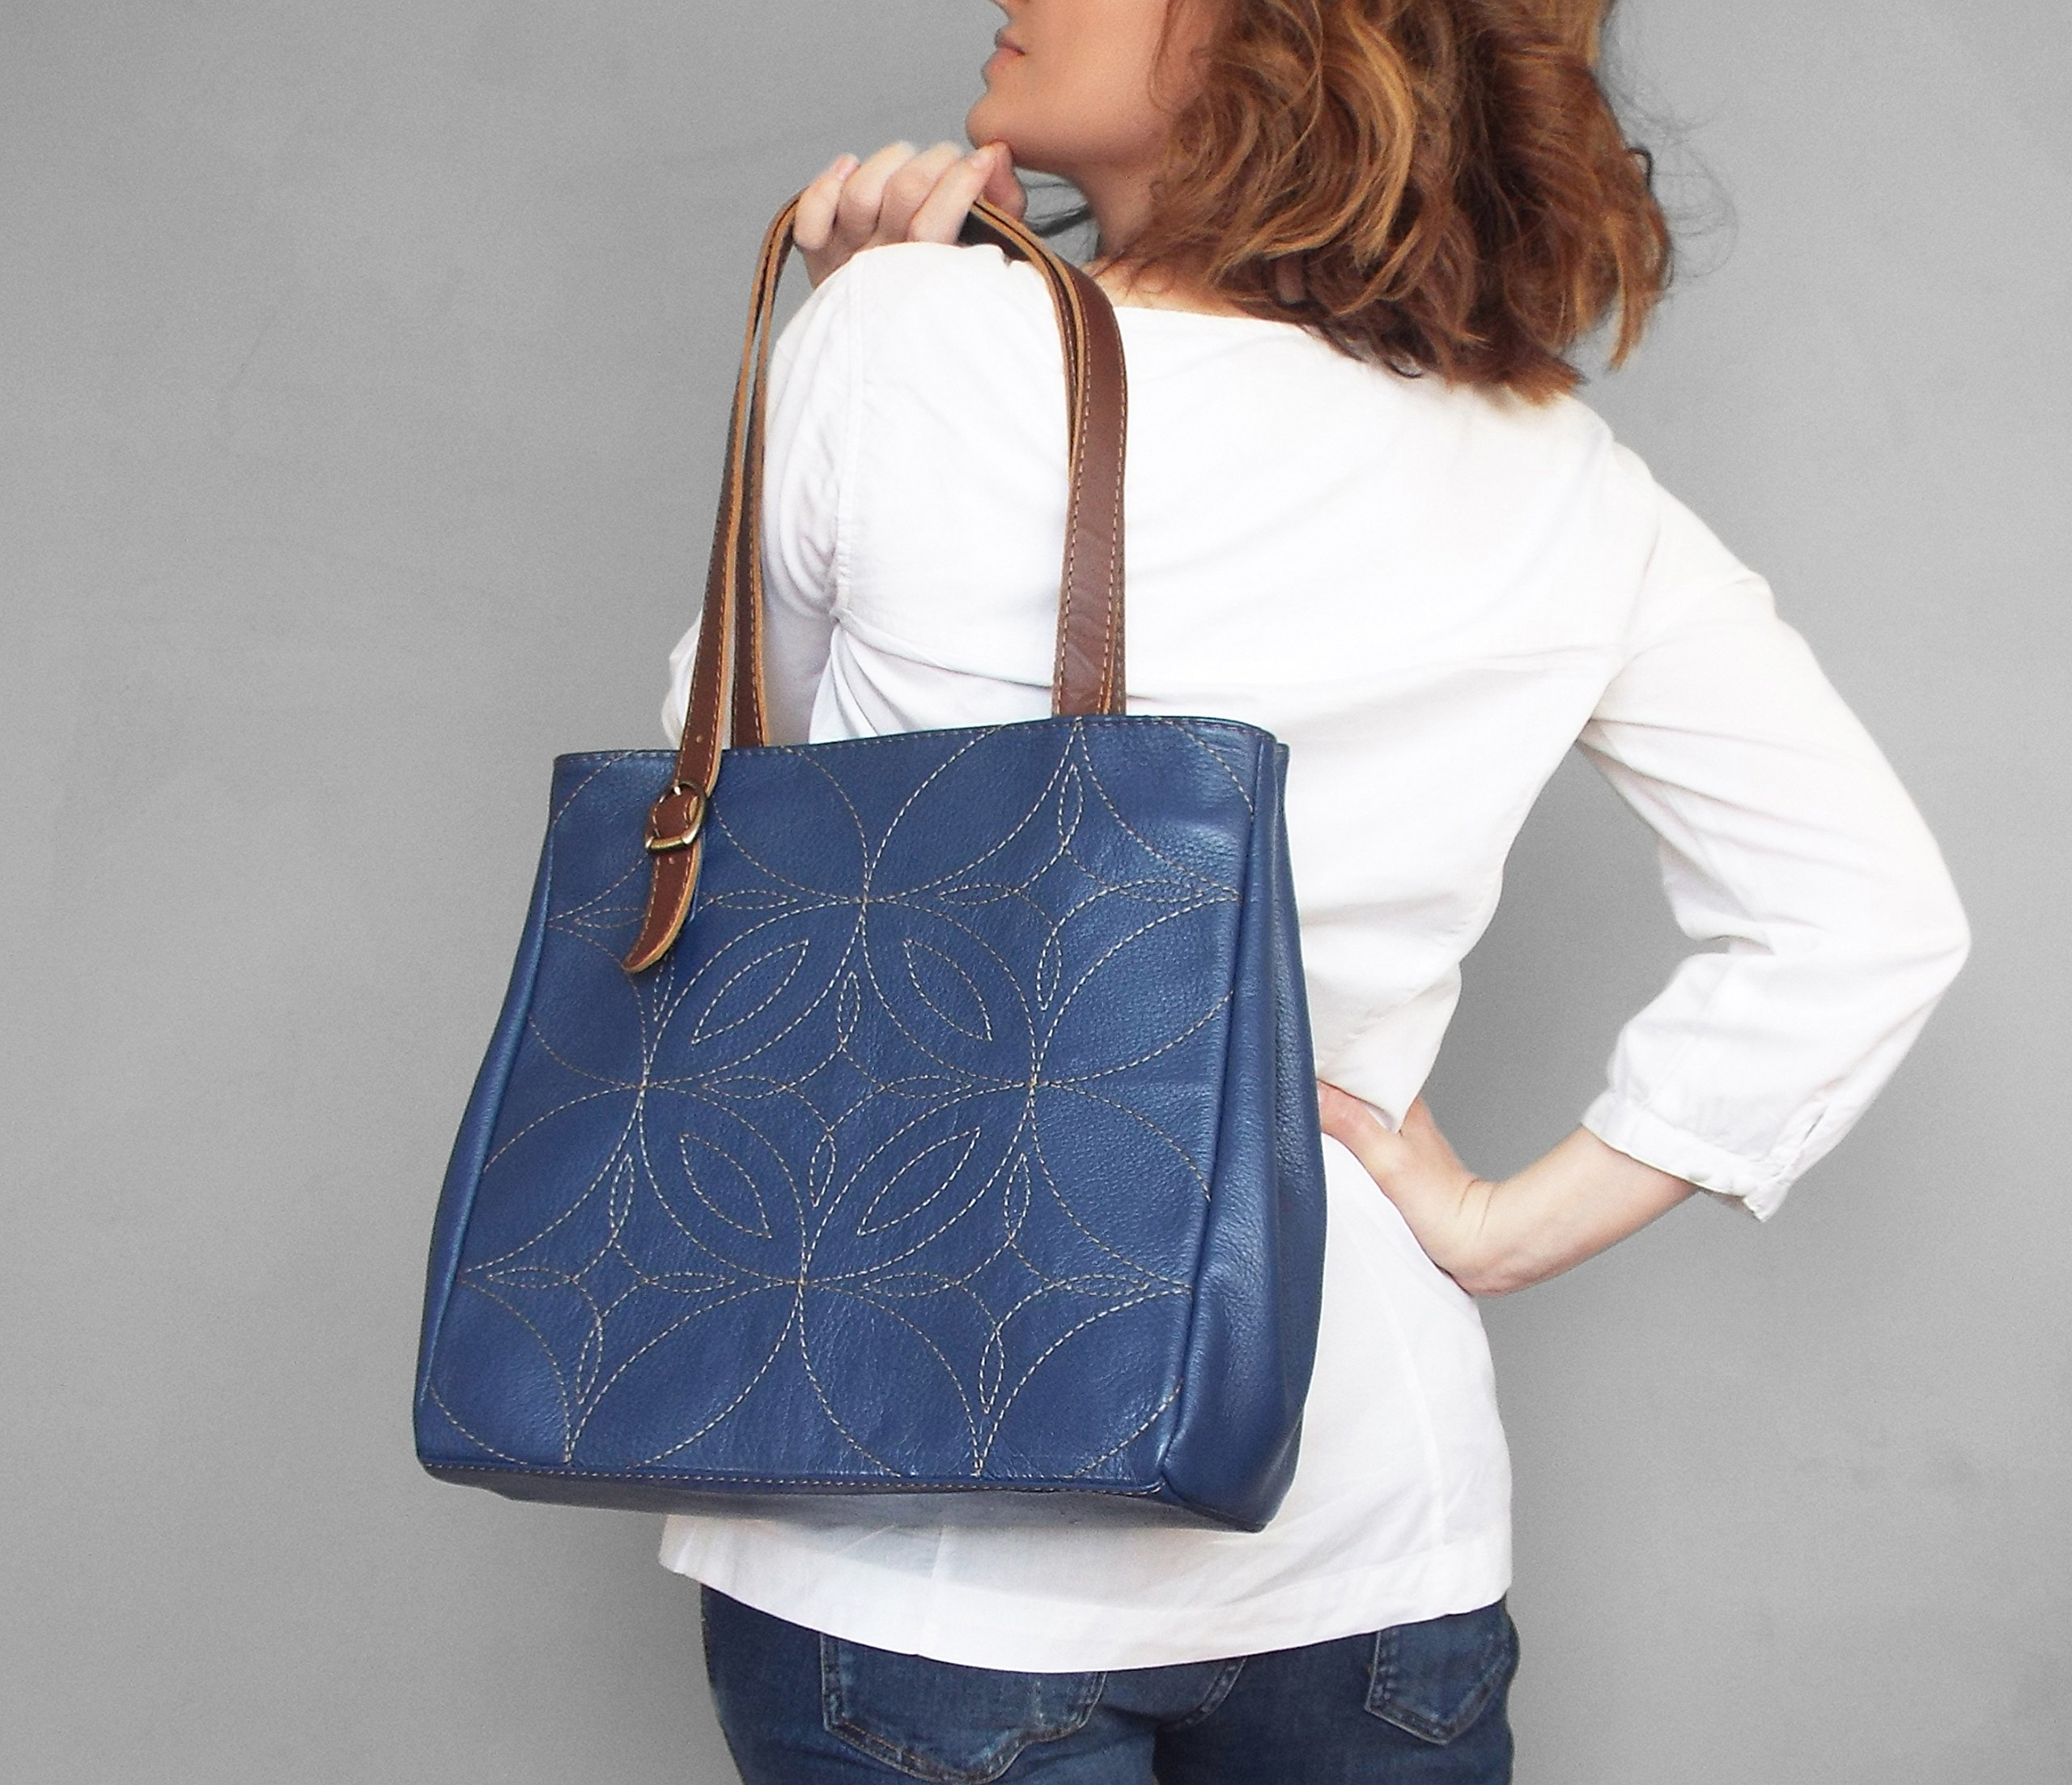 Leather tote bag. Blue leather tote. Tote bag leather. Embroidered leather handbag. Leather shoulder bag.